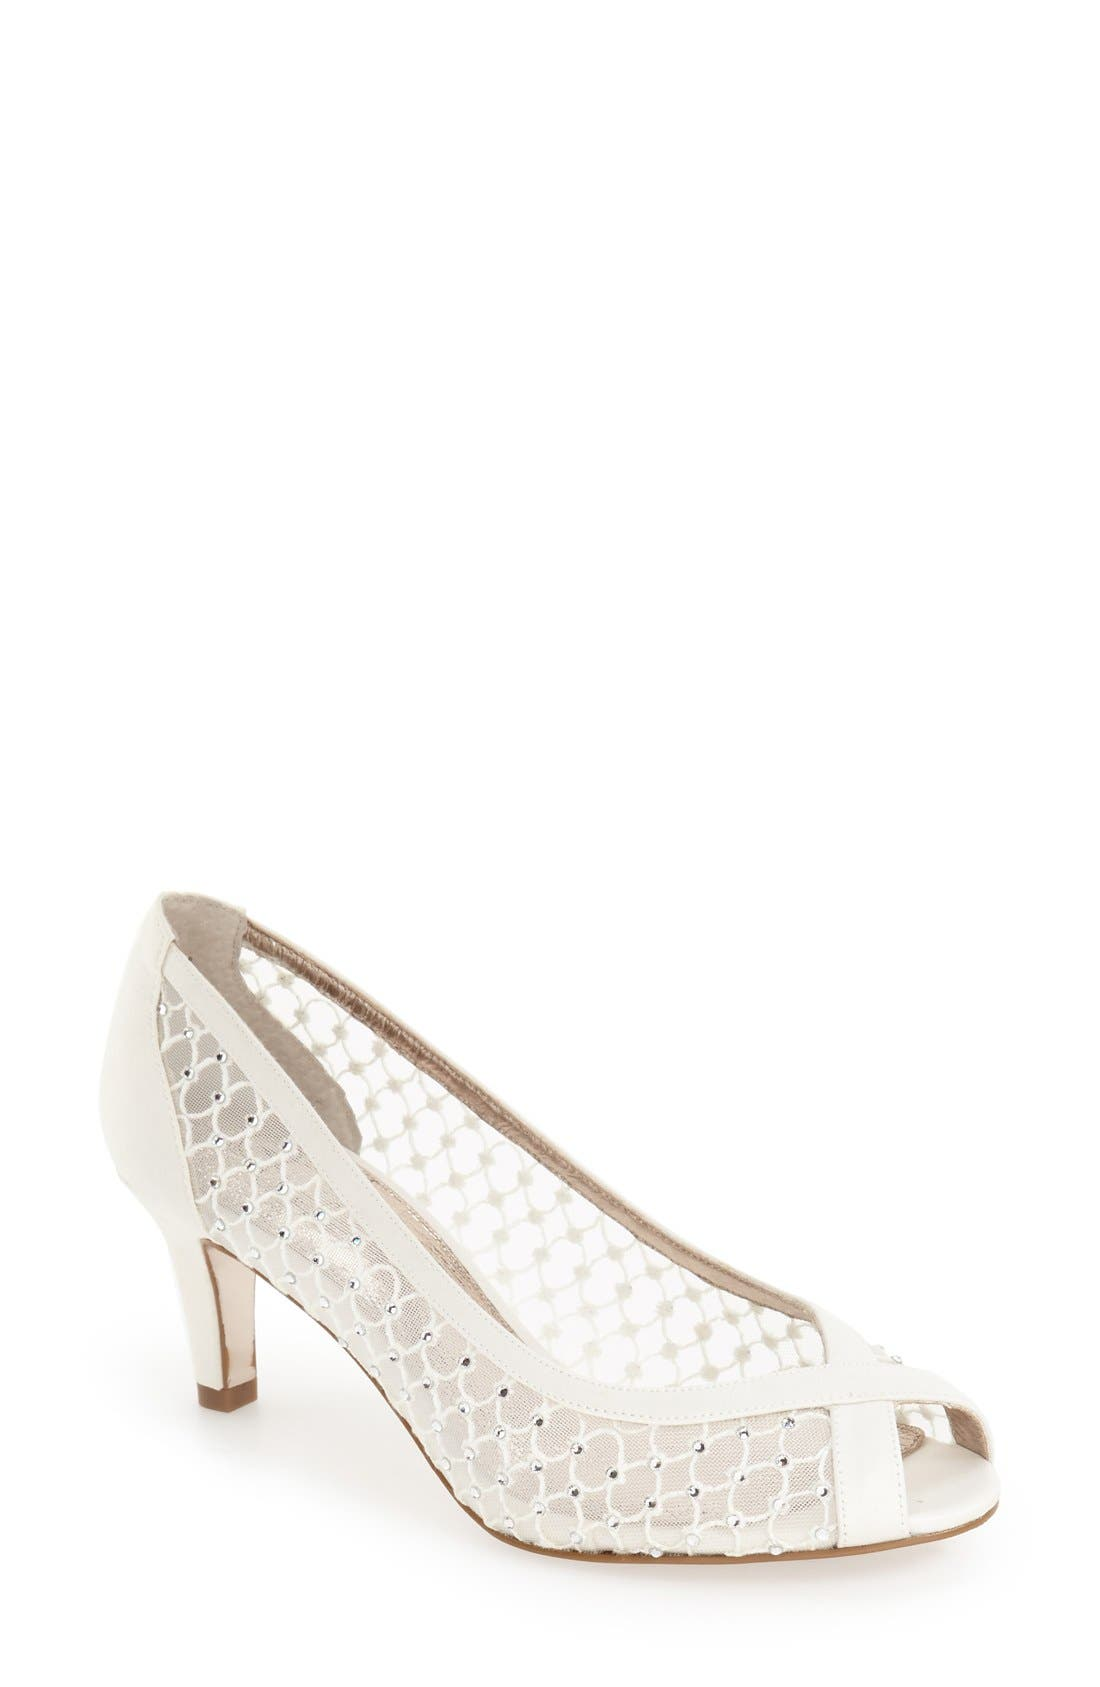 'Zandra' Crystal Embellished Peep Toe Pump,                             Main thumbnail 1, color,                             Ivory Faille